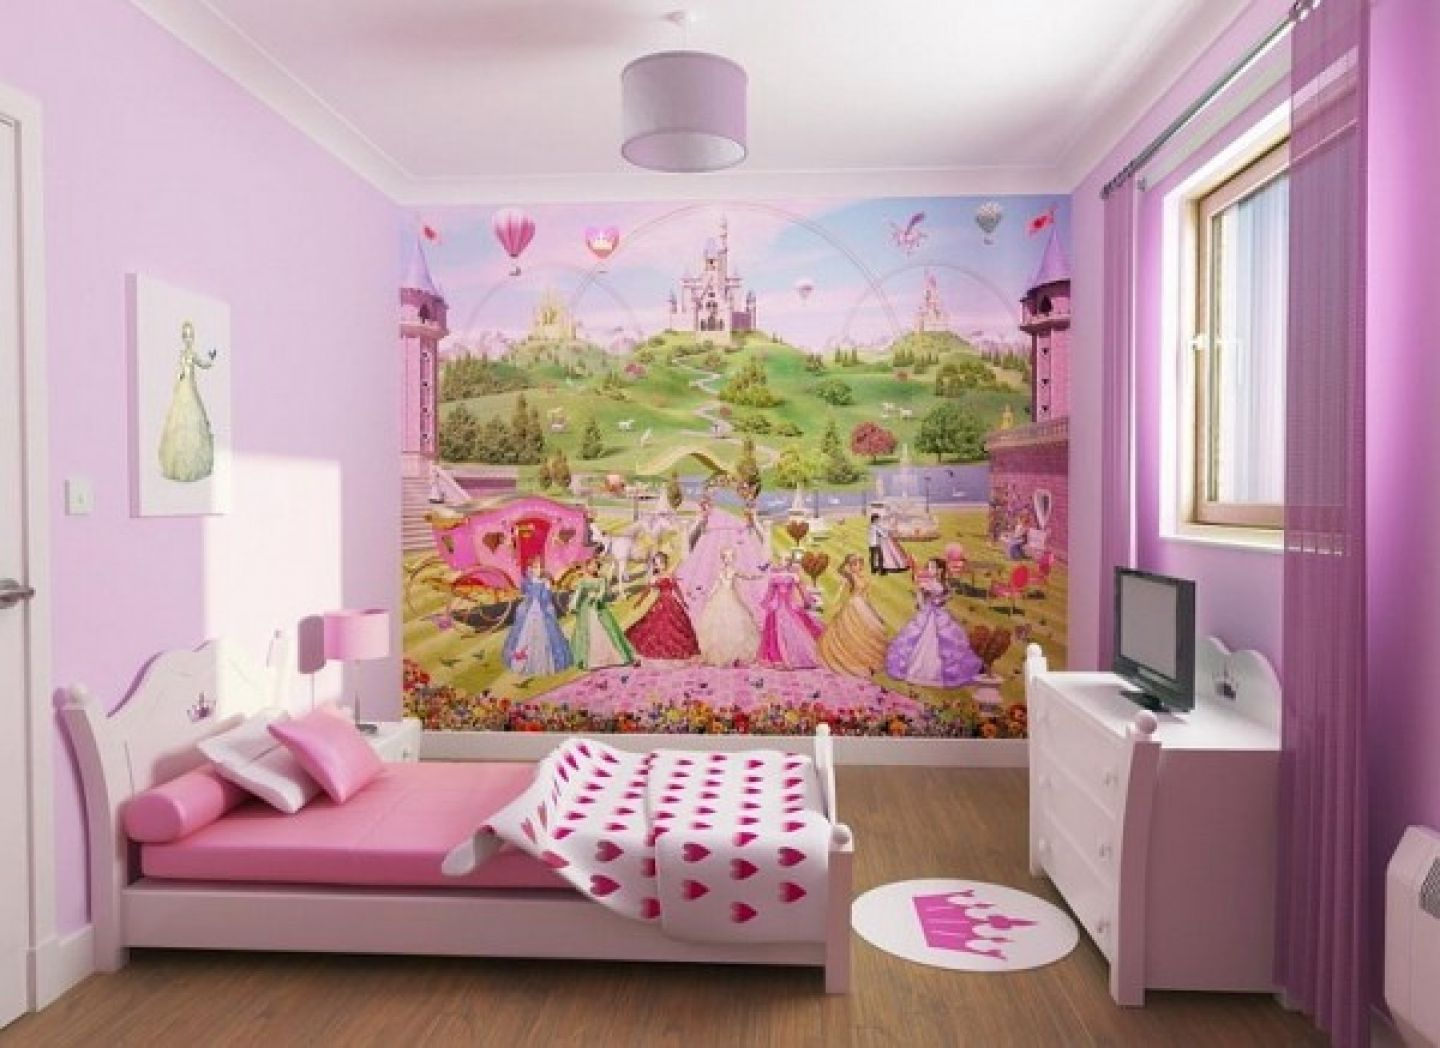 Girls Bedroom Decorating Ideas Entrancing Girls' Bedroom Style  Bedrooms Small Bedroom Decorating And Room Review